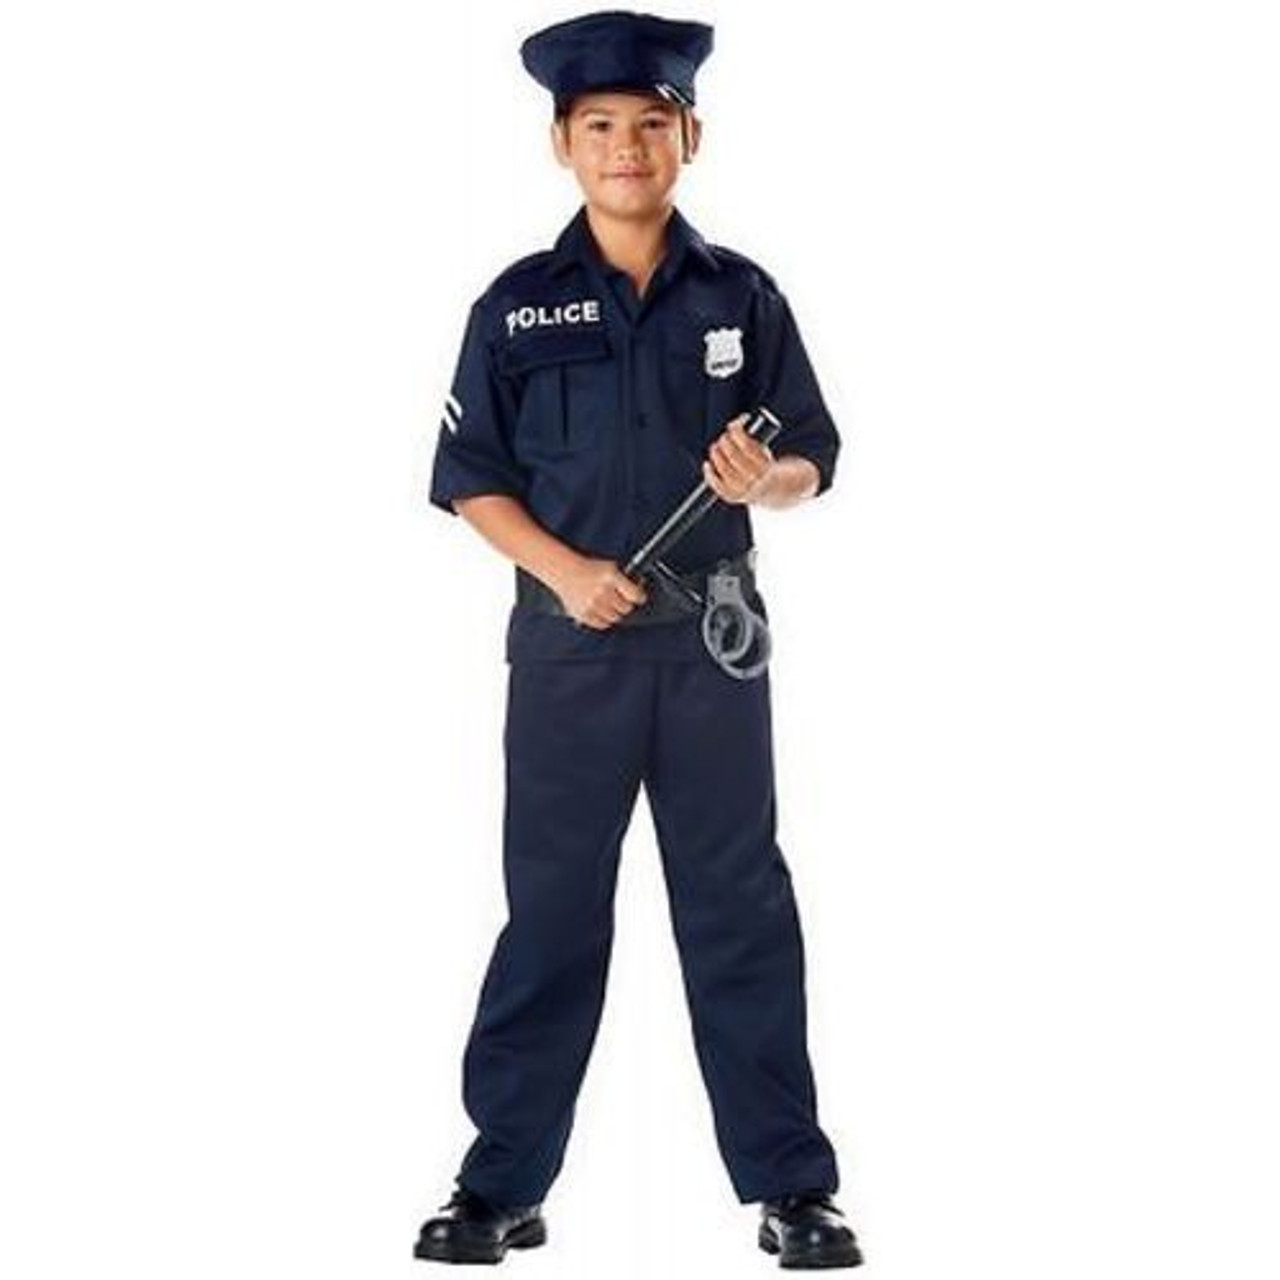 CHILDRENS POLICE OFFICER UNIFORM COP DETECTIVE BADGE HALLOWEN KIDS COSTUME  XS-L e559e54b60dd